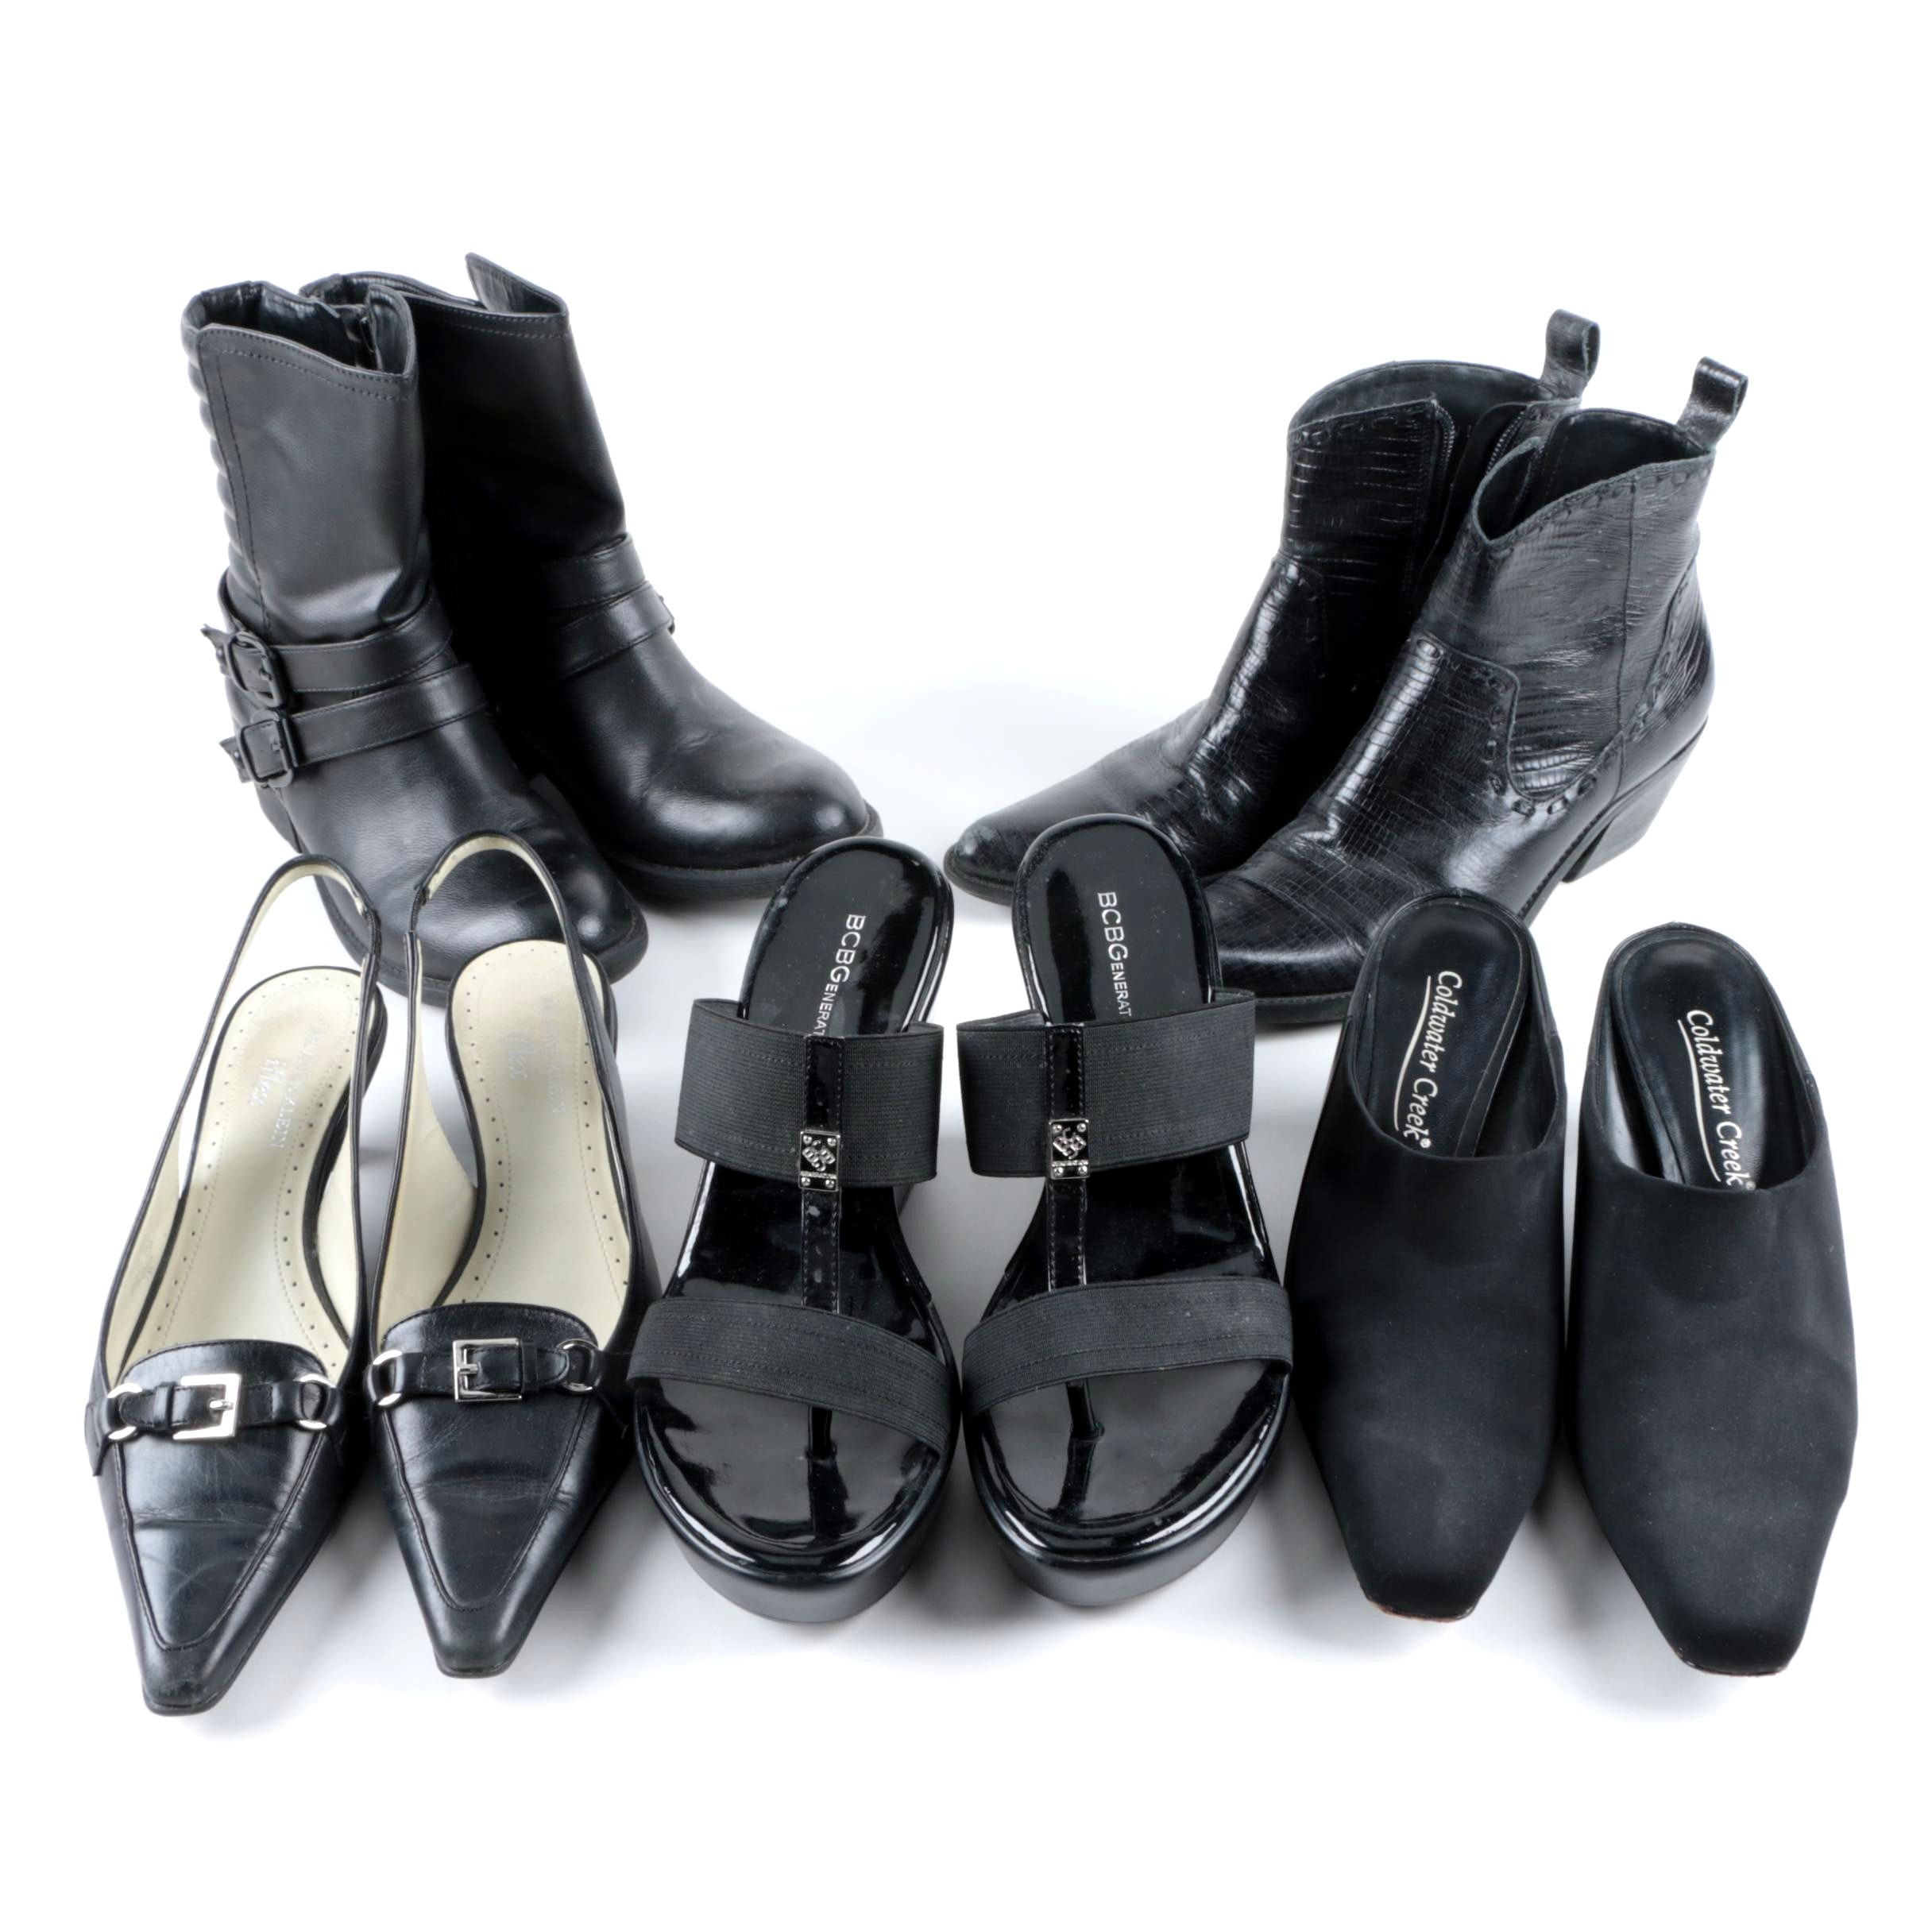 Women's Shoes Including Anne Klein and BCBGeneration